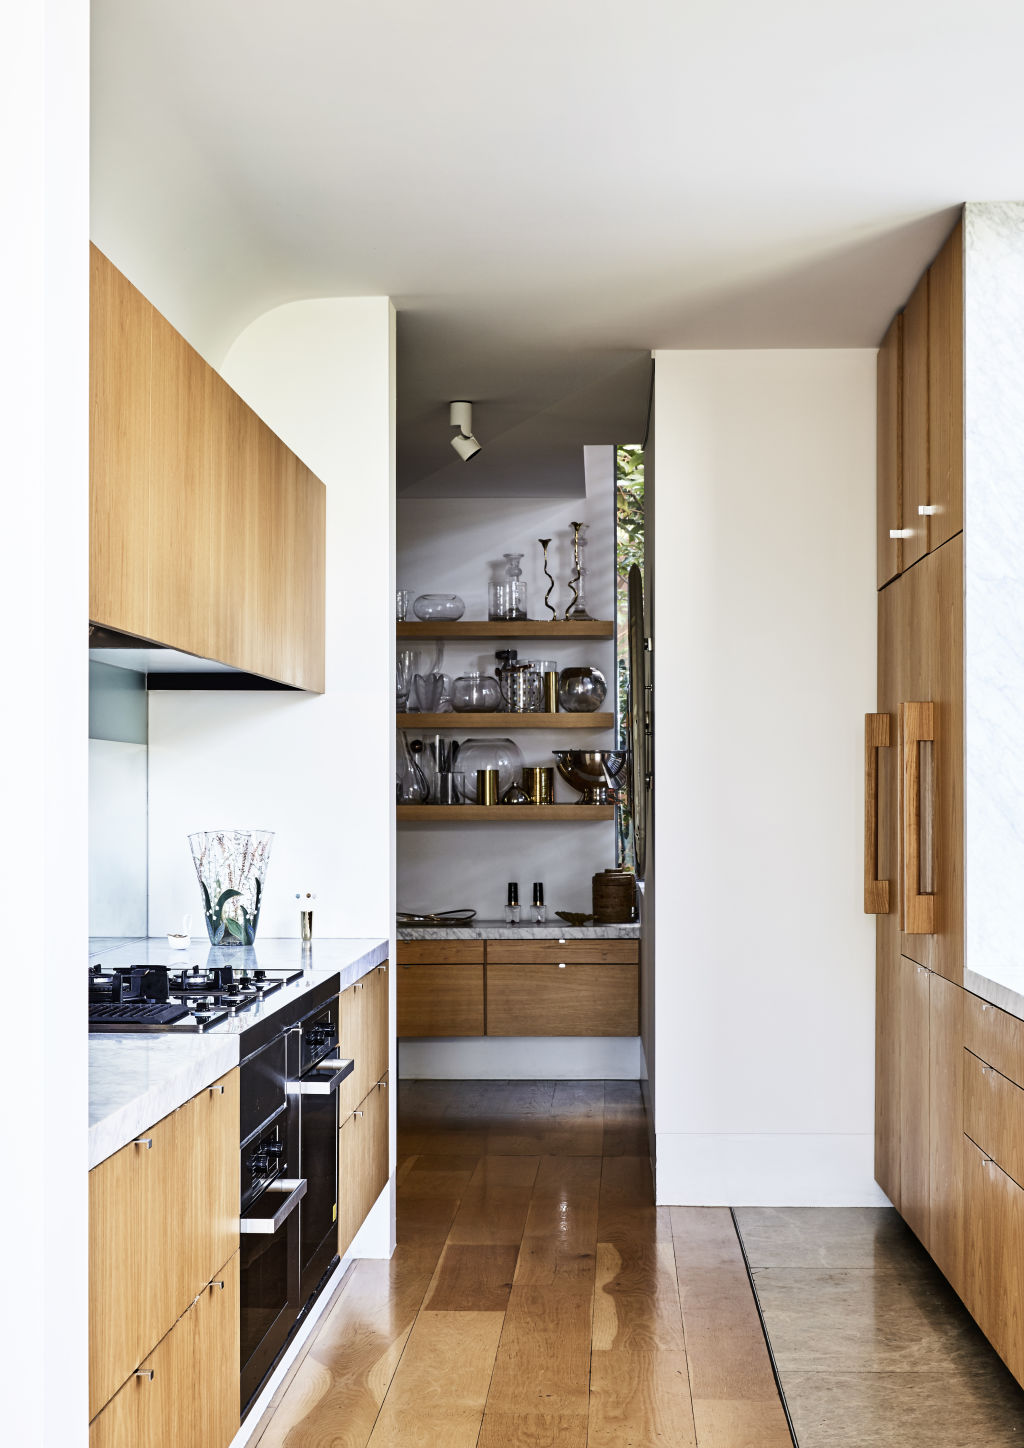 'I have a love of vases! This one in our kitchen is Dior', tells Deborah.Styling: Annie Portelli.